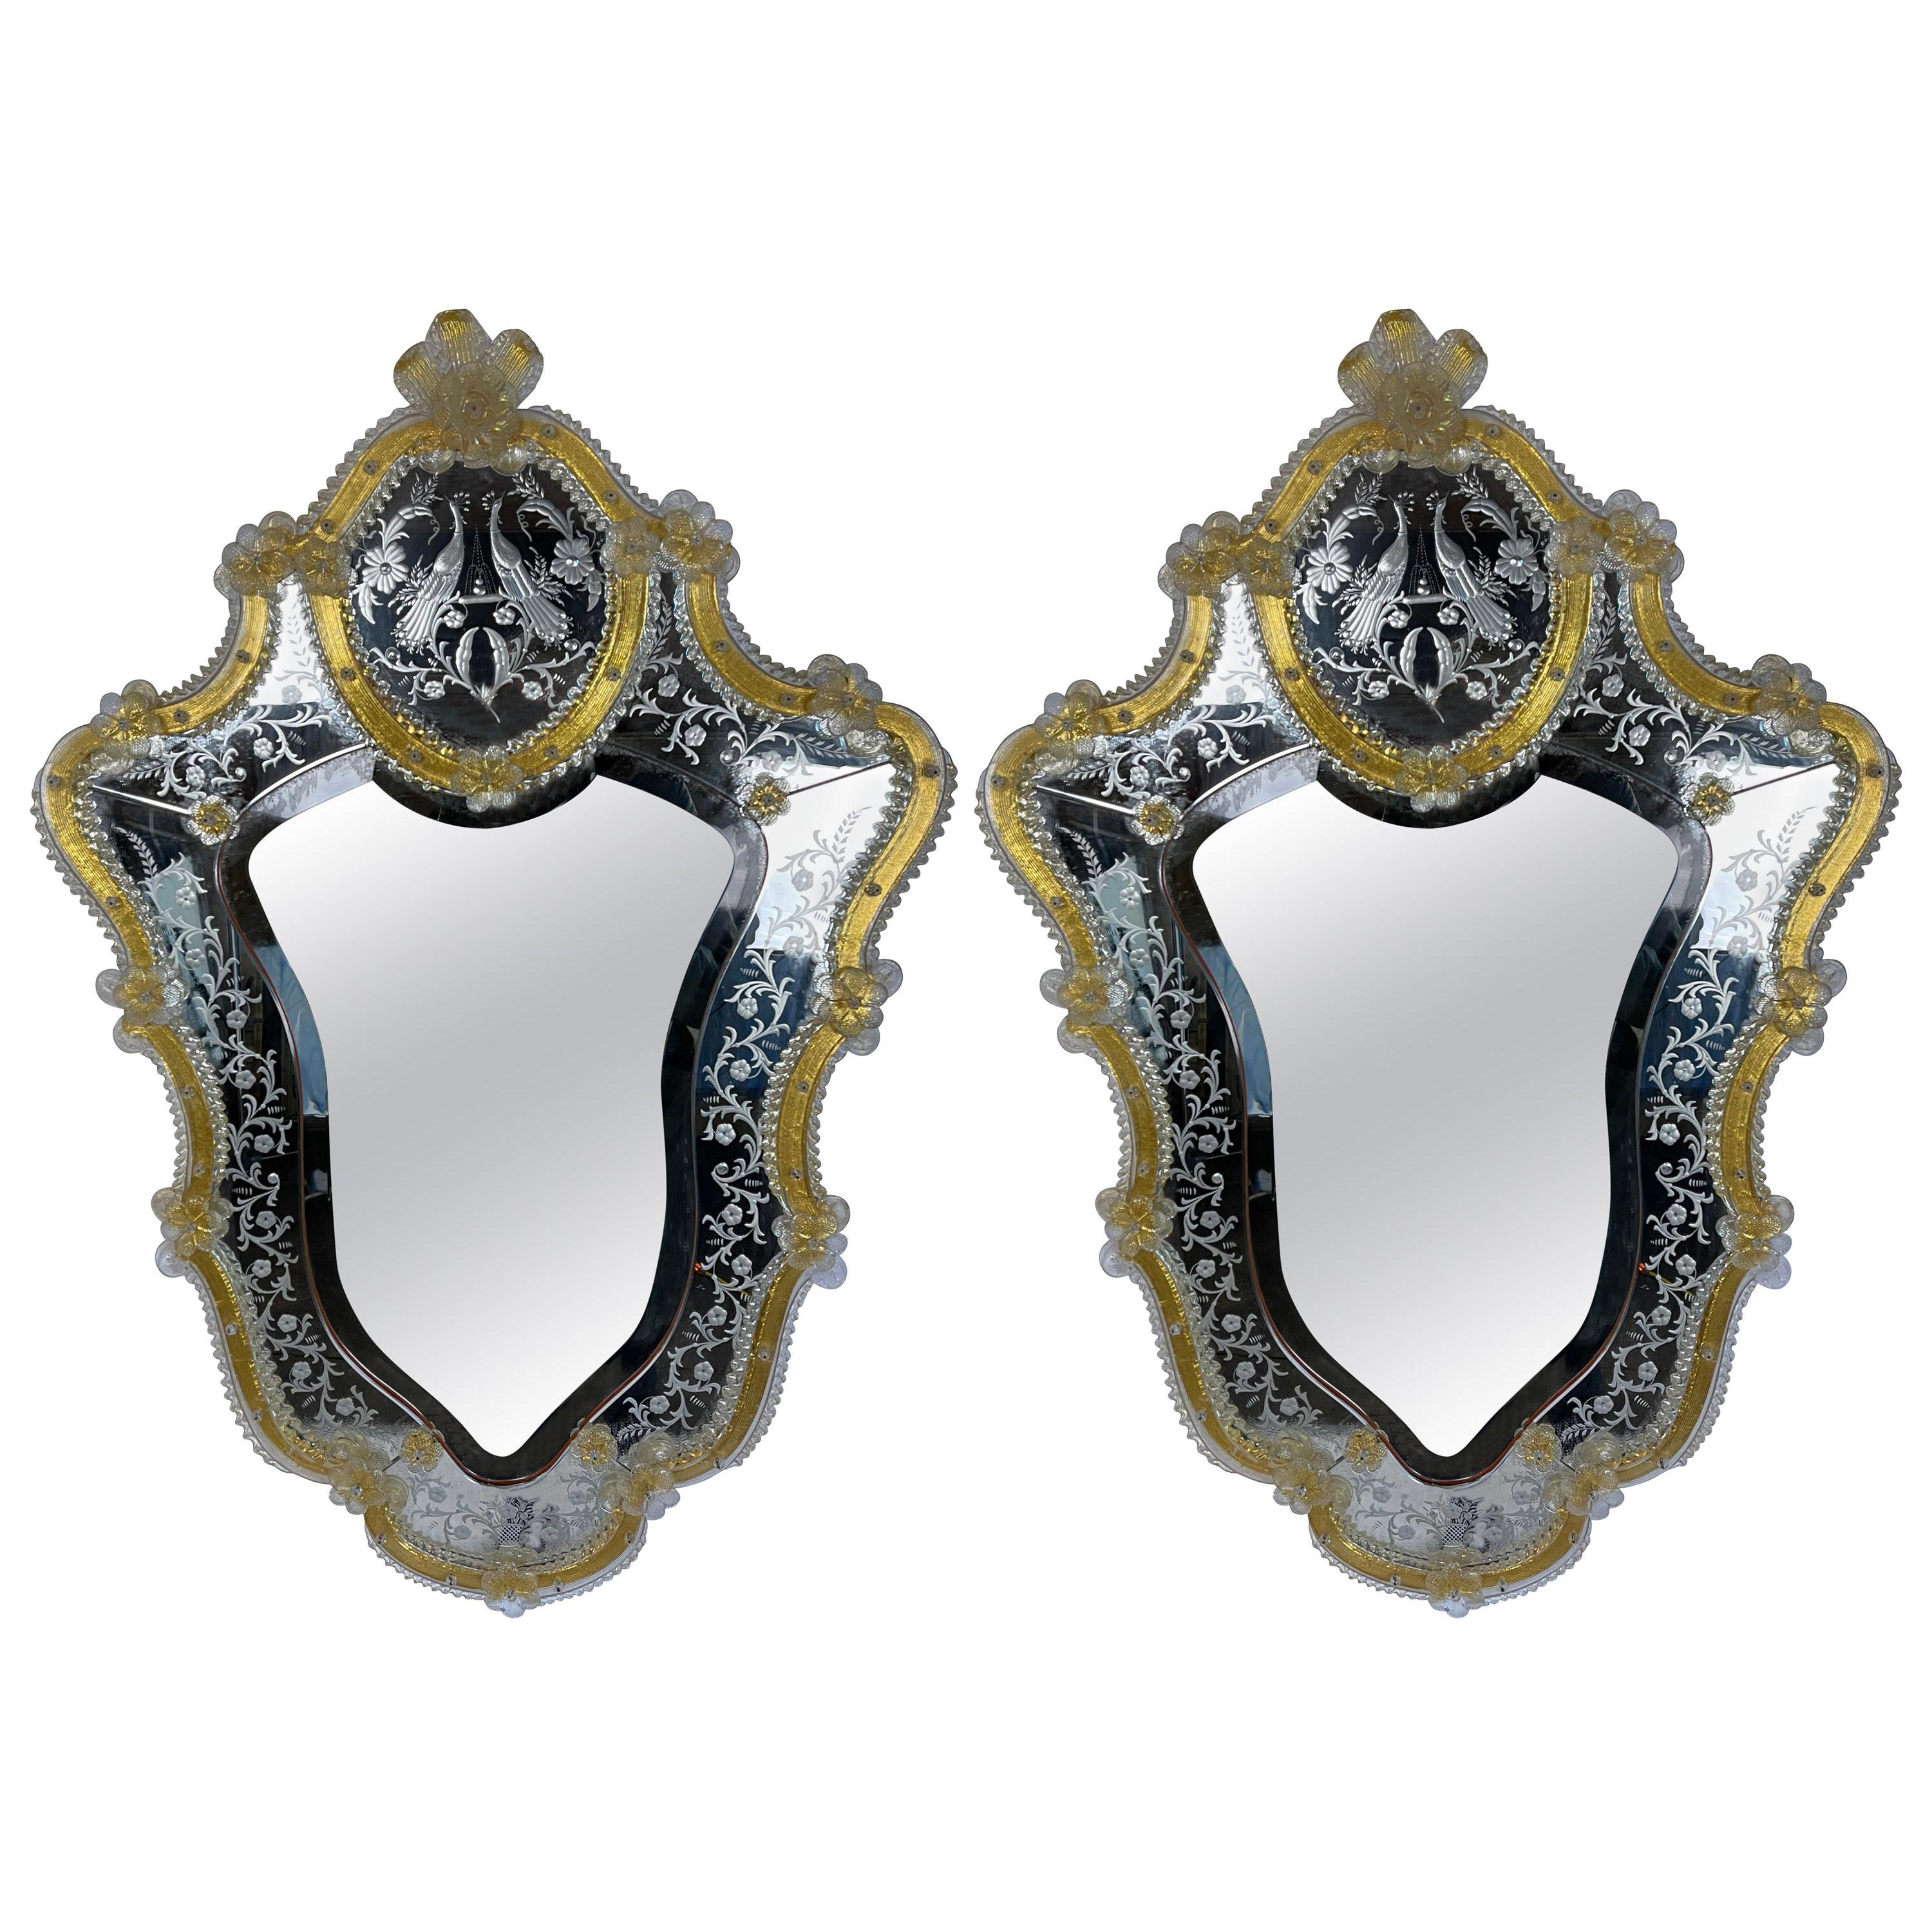 Pair of Gold and White Venetian Shield Form Glass Mirrors